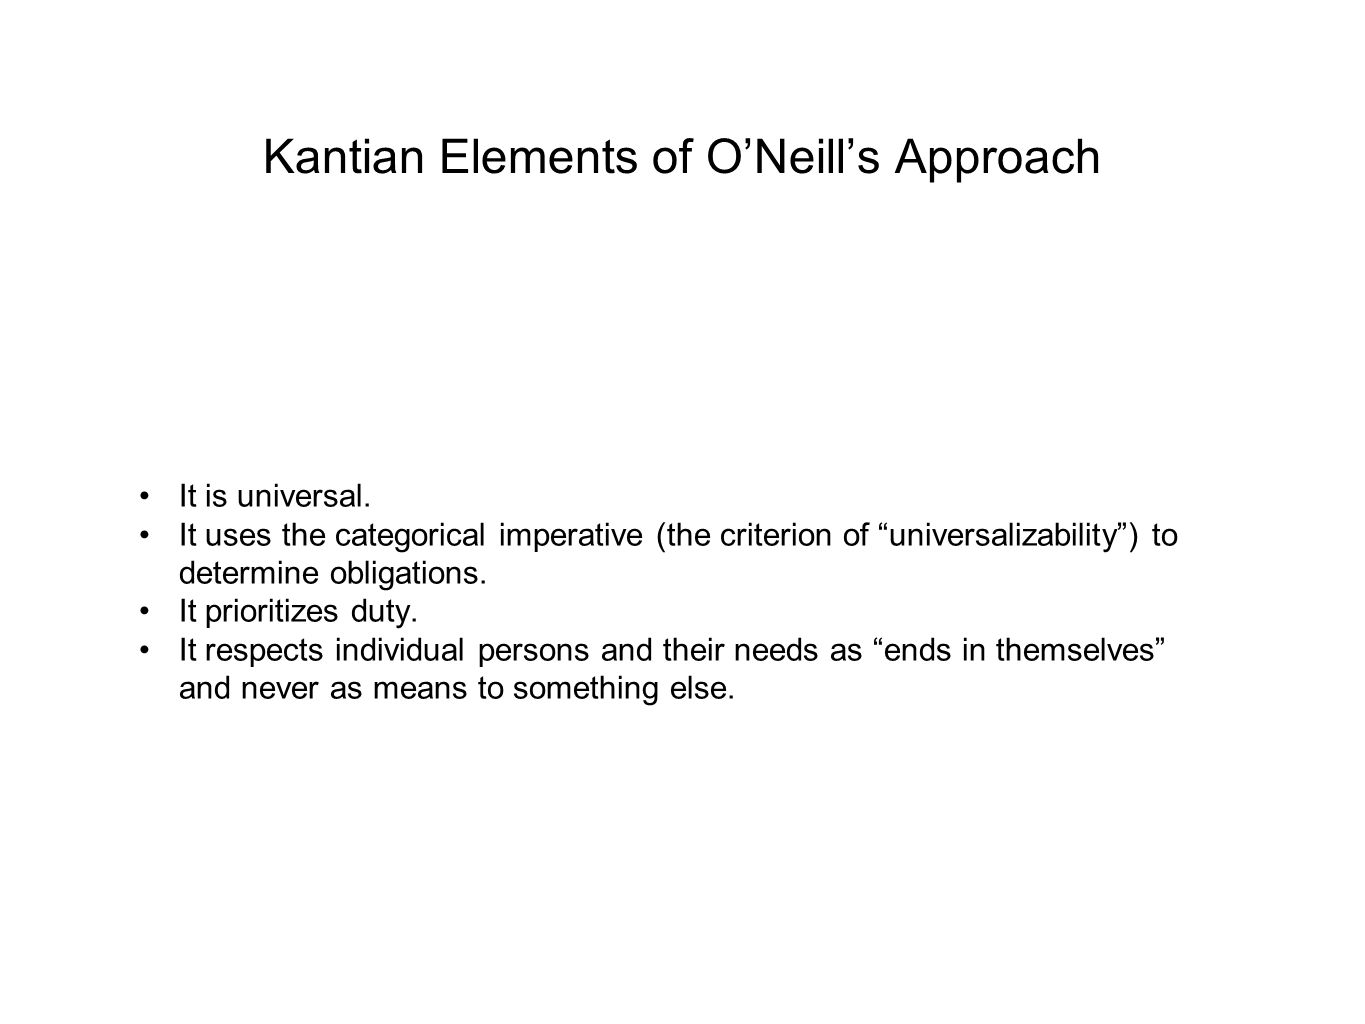 Kantian Elements of O'Neill's Approach